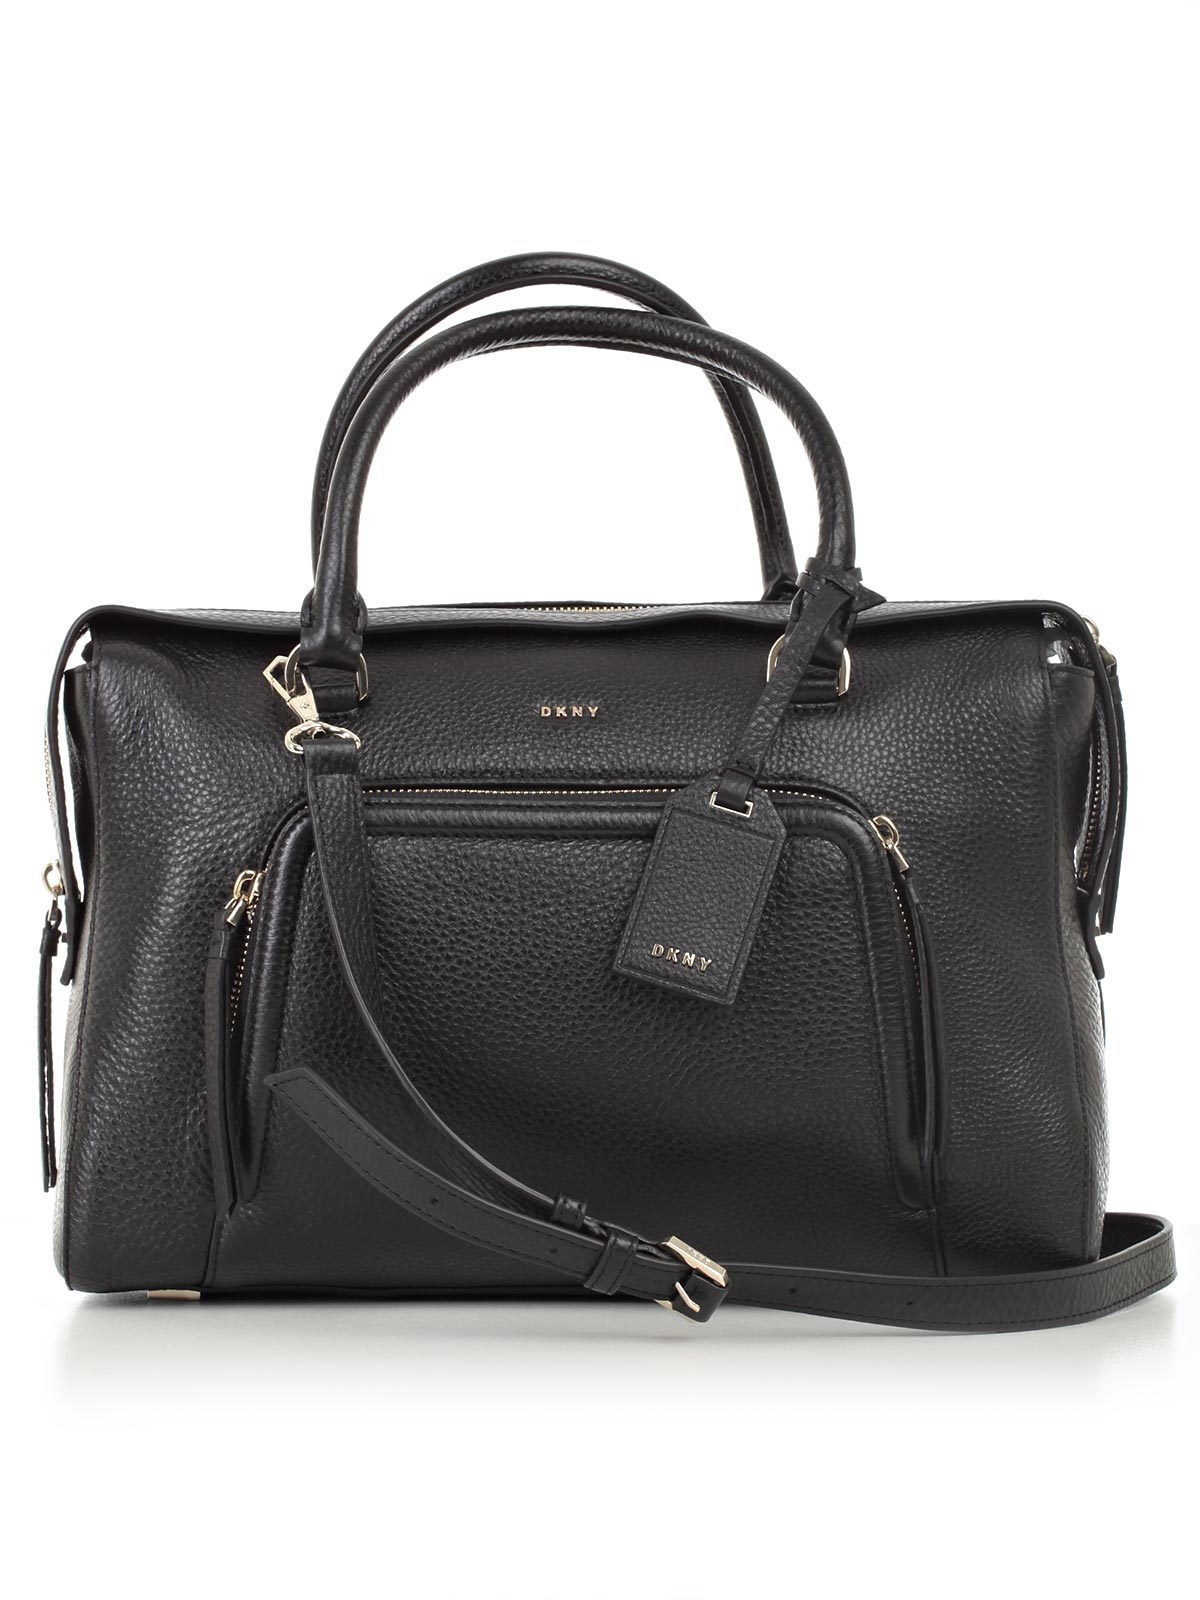 Picture of DKNY BAG LARGE SATCHEL BORSA ZIP